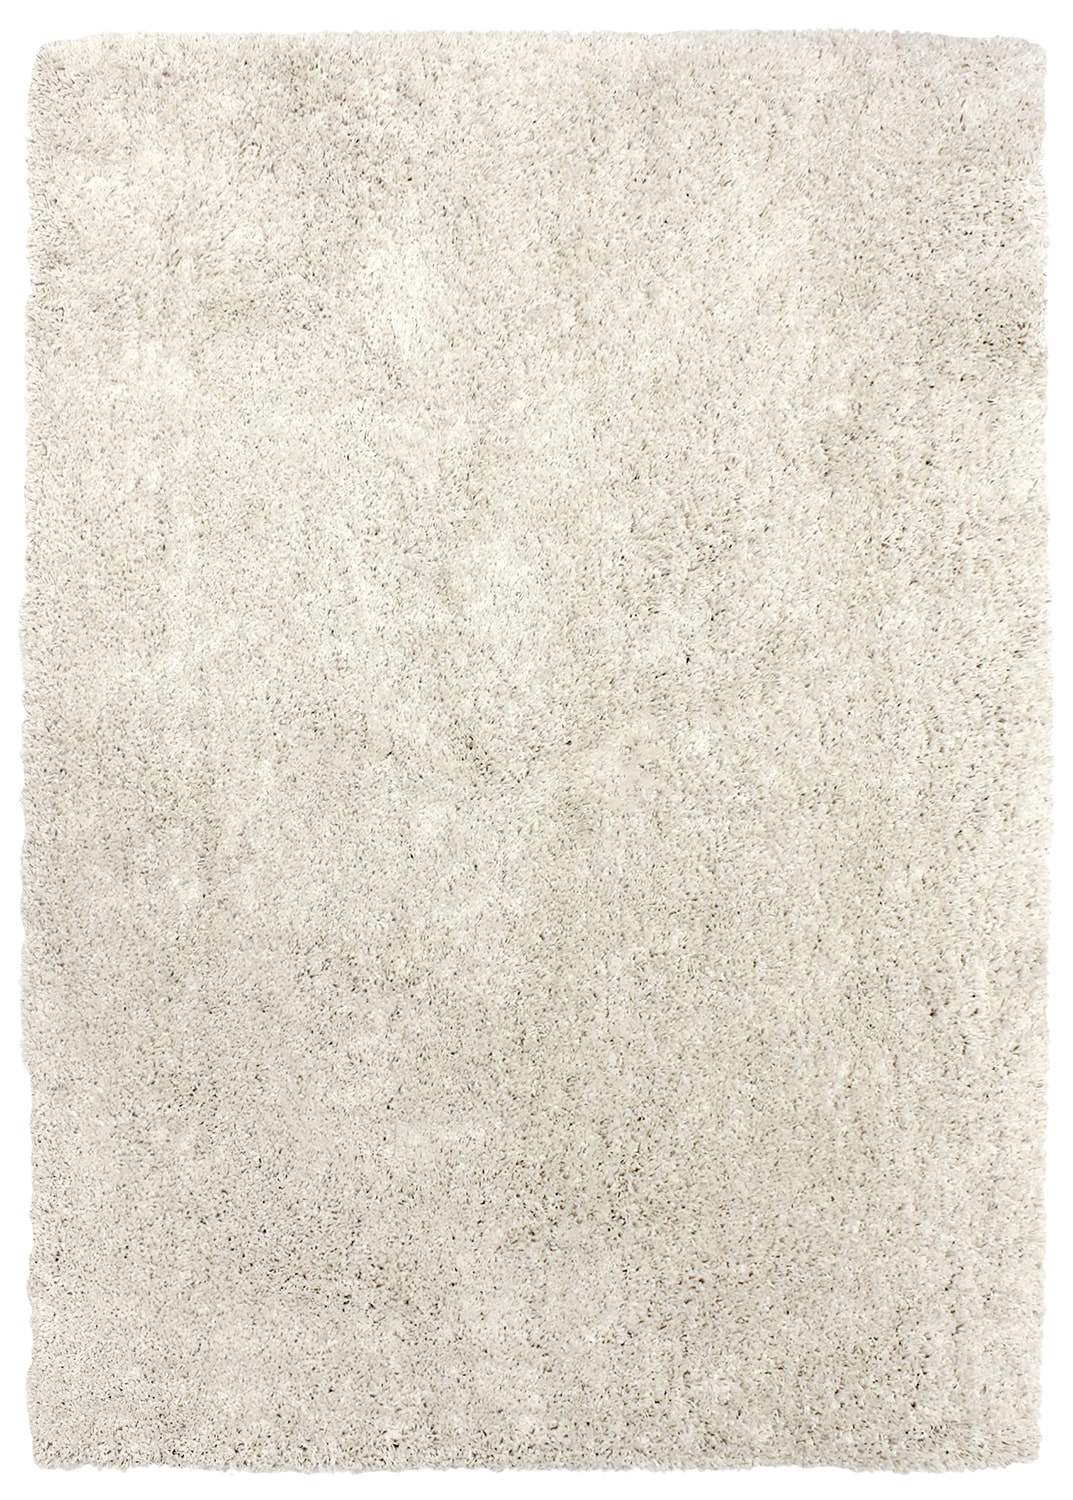 Rugs - Loft Off-White Shag Area Rug – 8' x 10'